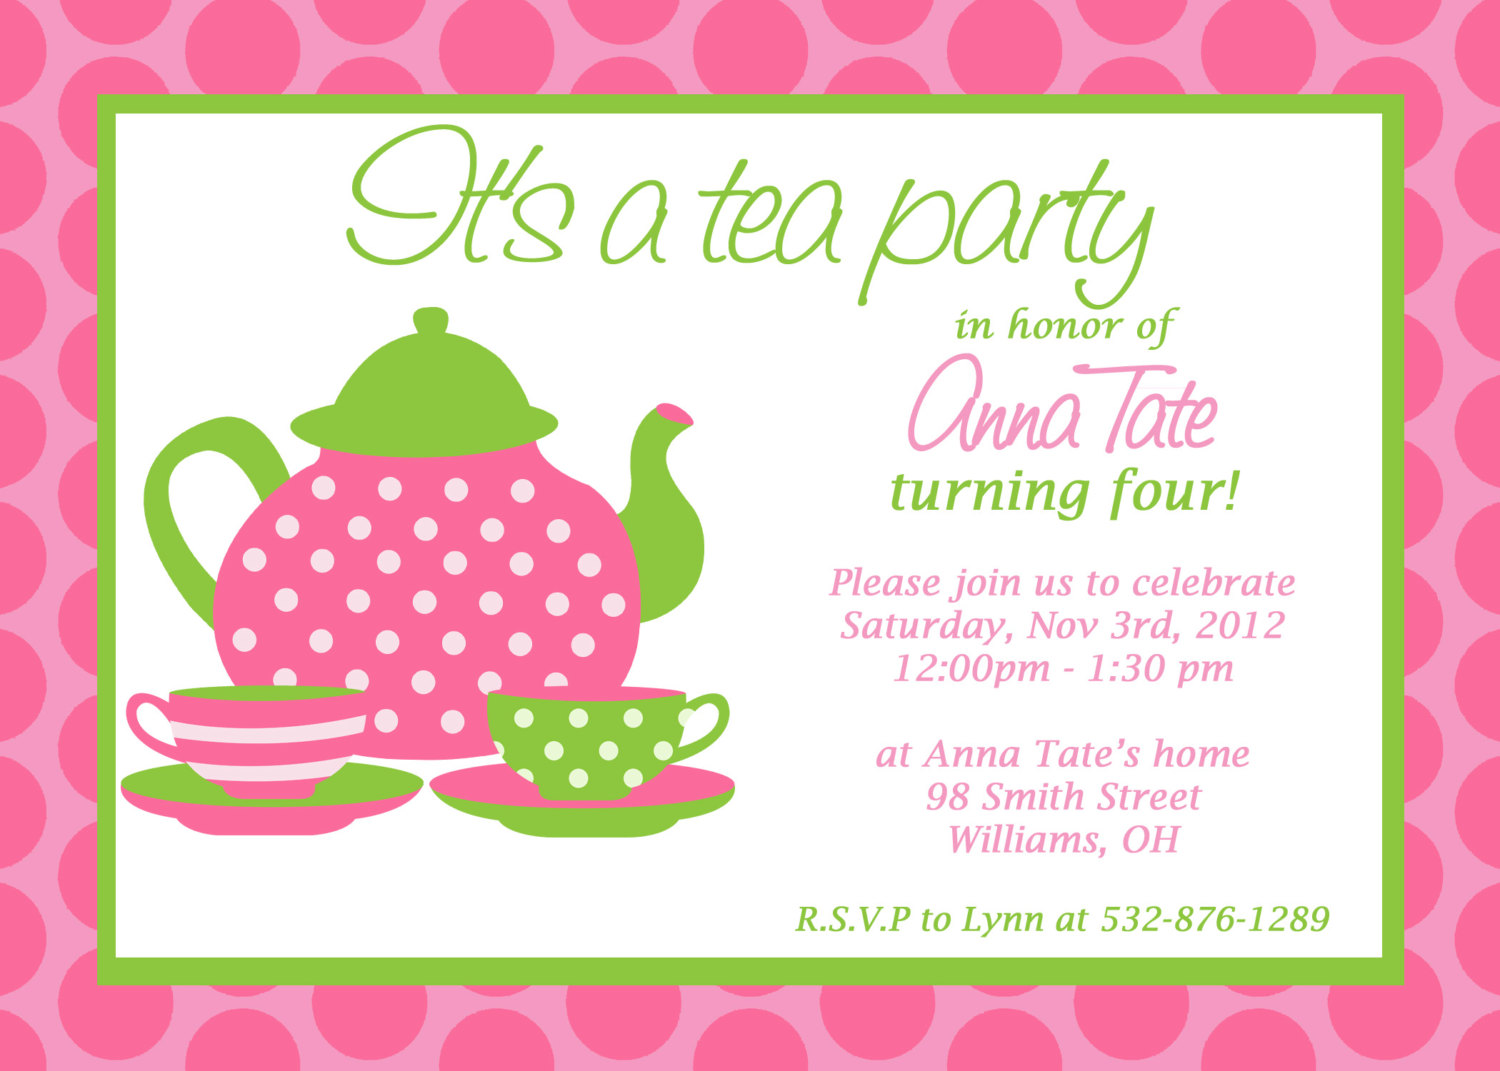 Little girl party invitations mickey mouse invitations templates little girl tea party invitations monicamarmolfo Choice Image